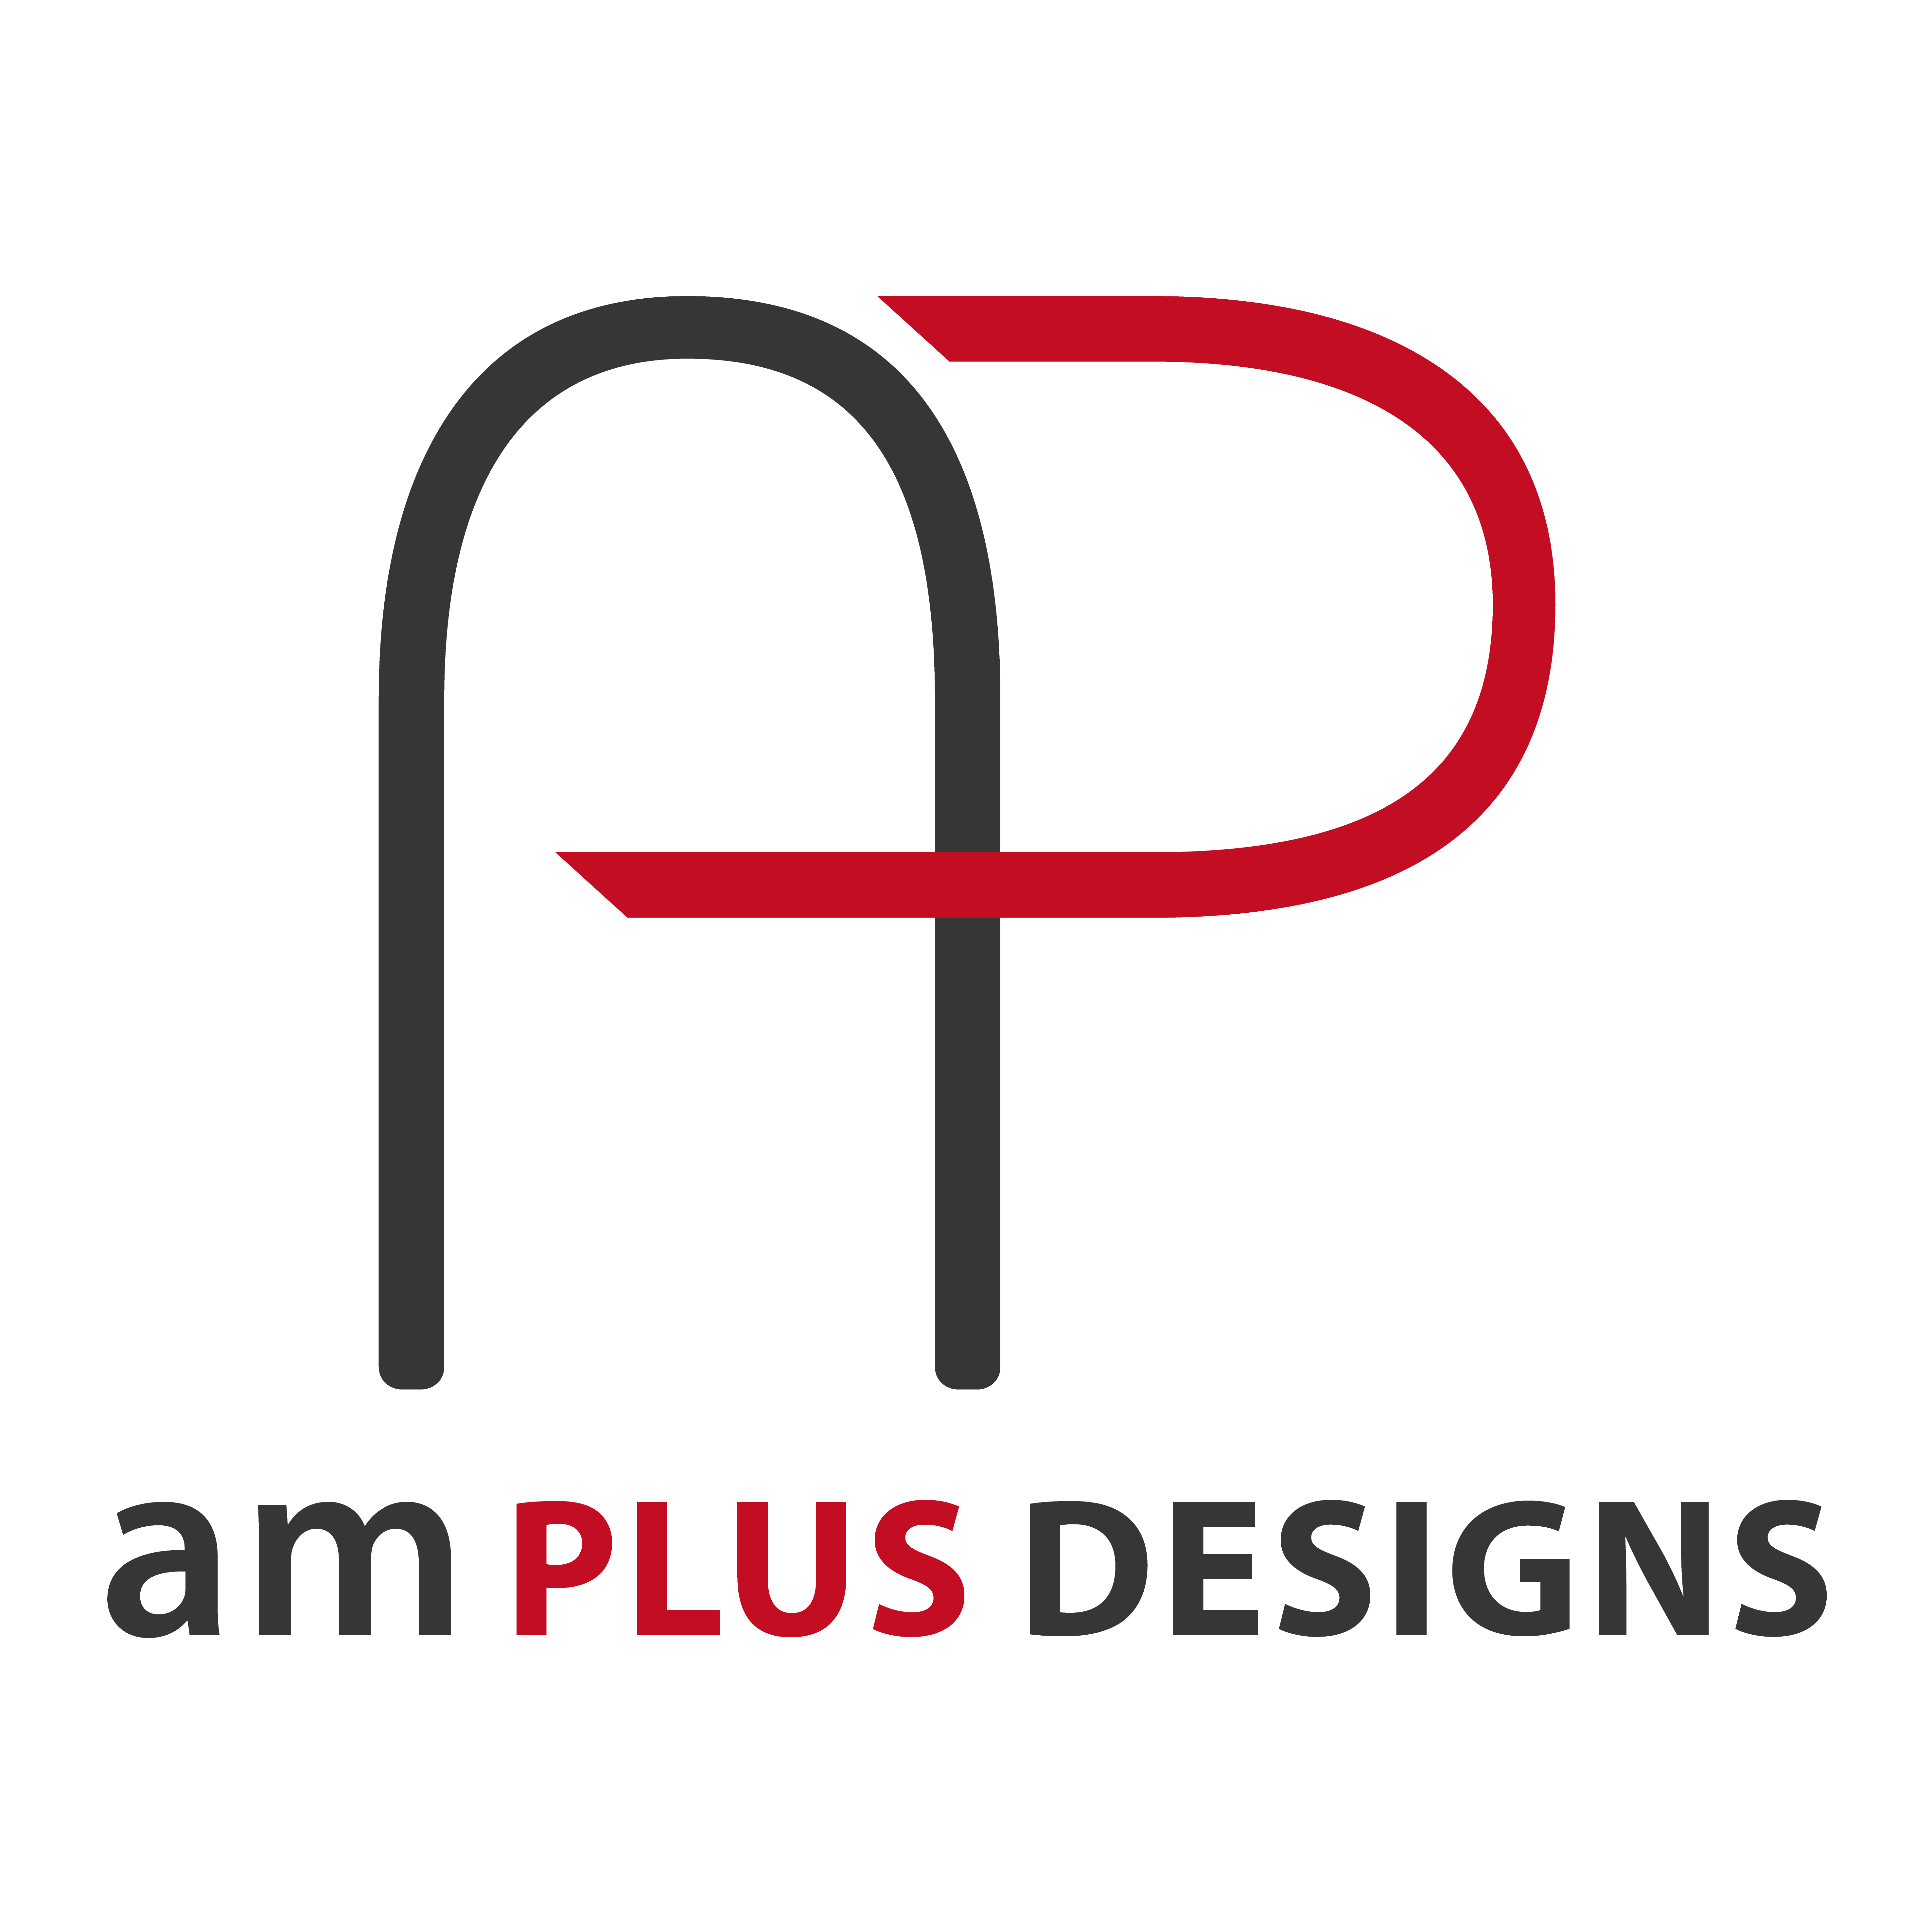 am PLUS Designs